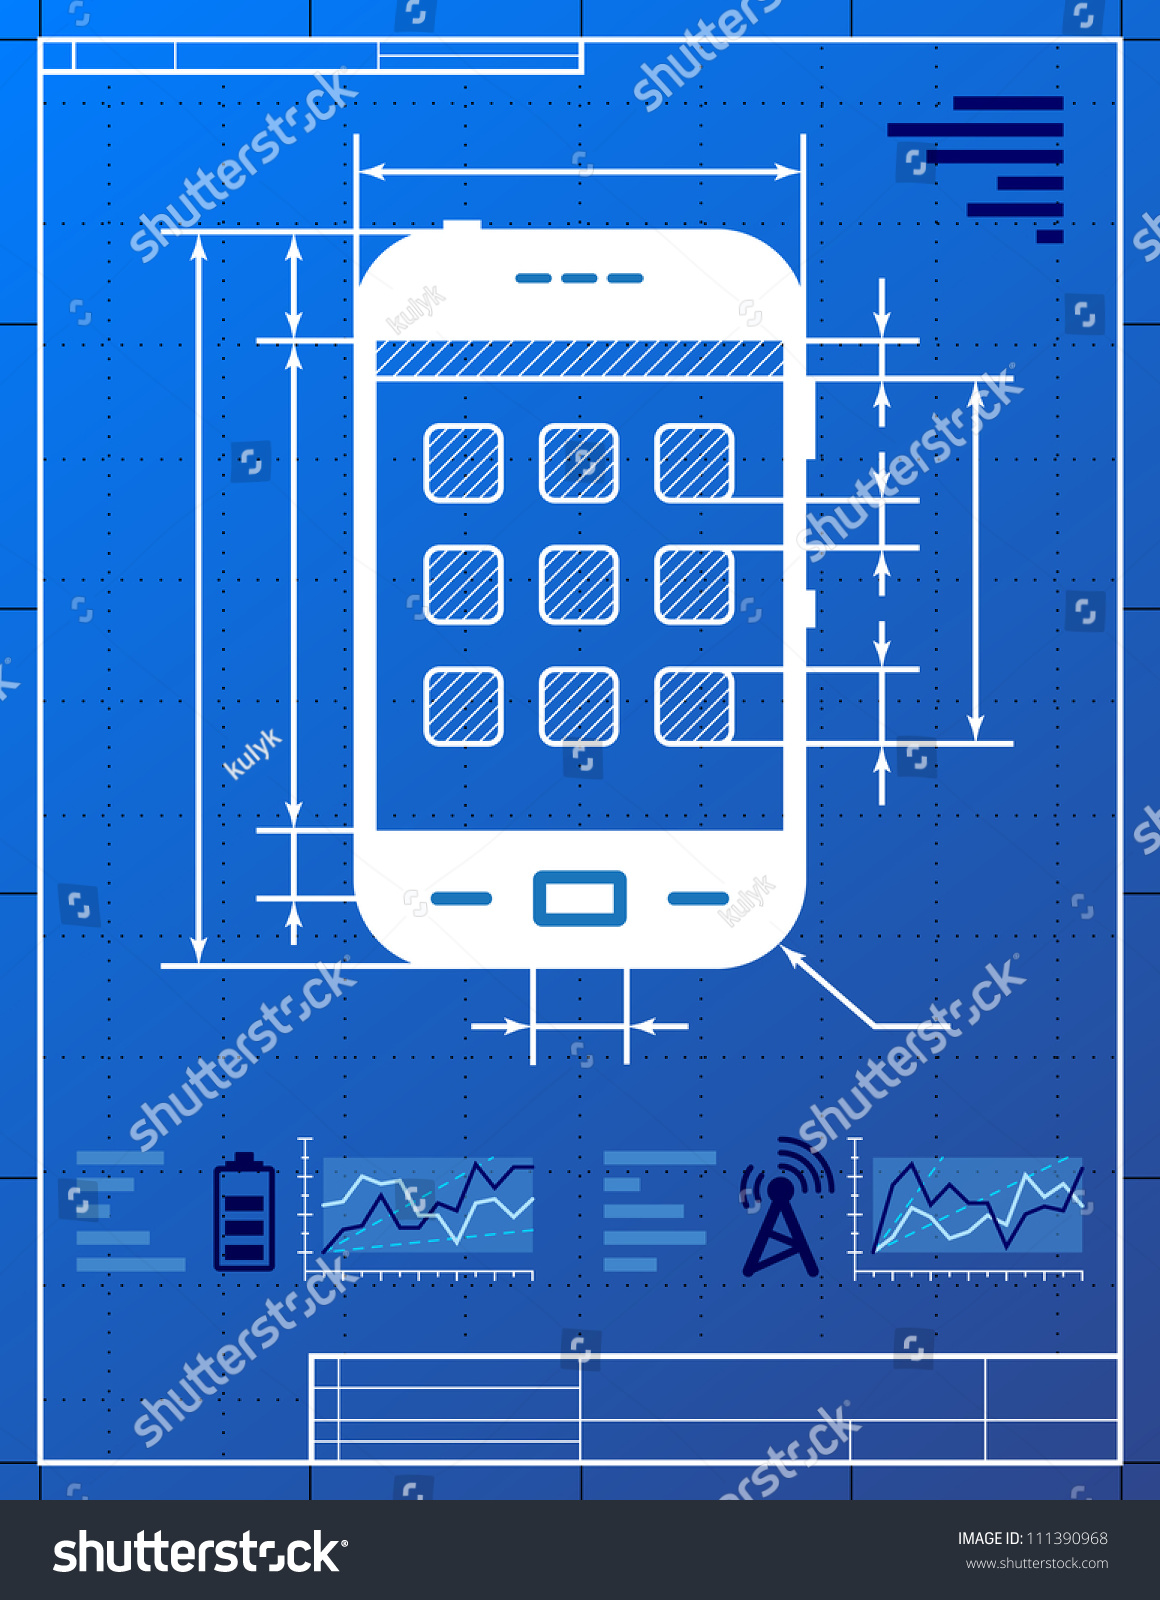 Smart phone like blueprint drawing stylized stock vector 2018 smart phone like blueprint drawing stylized drawing of smart phone on blueprint paper malvernweather Image collections